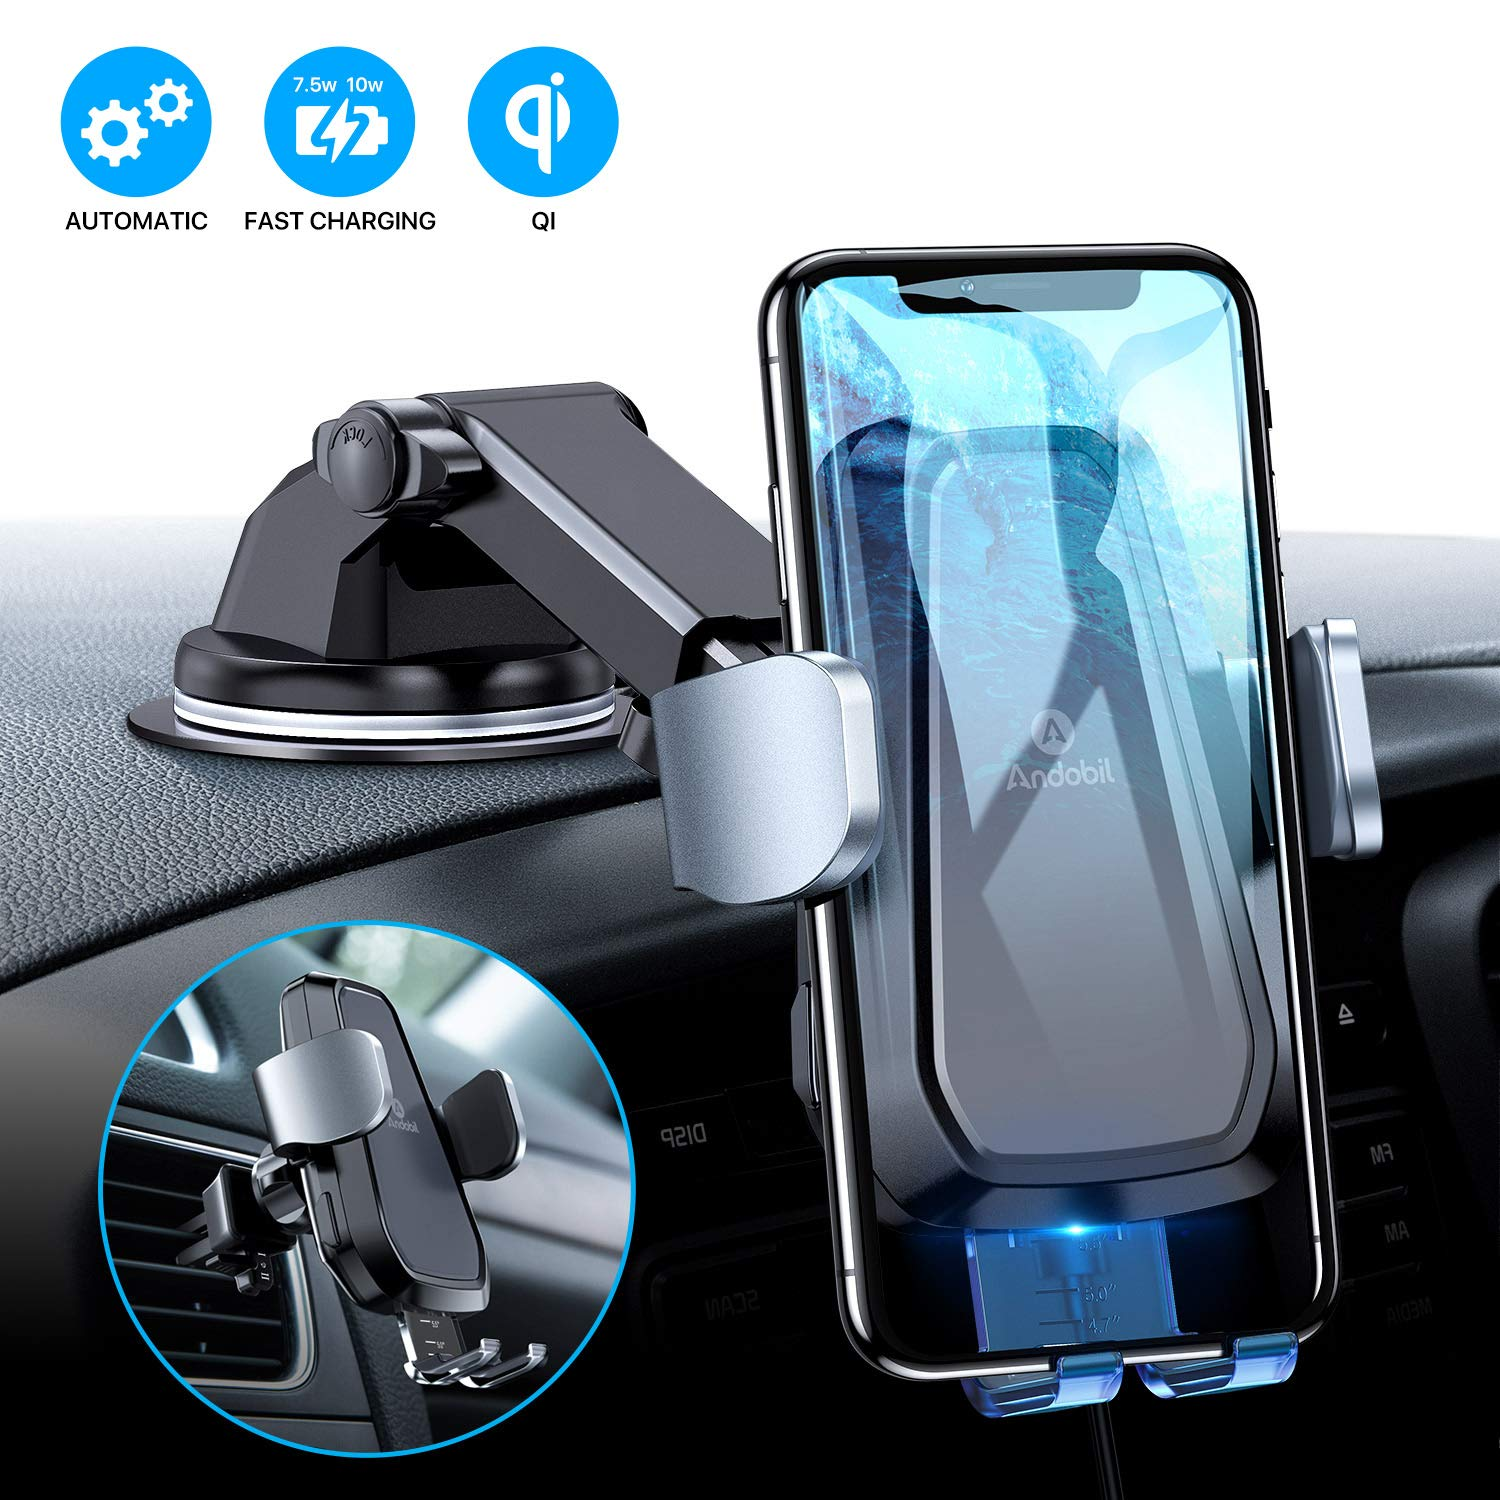 Andobil Wireless Car Charger Mount, 2019 Futuristic Upgrade Fast Auto-Clamping Qi-Certified for Car Cradle Compatible iPhone 11/11 Pro/ 11 Pro Max/Xs/Xr/X/8/8+, Samsung S10/S10+/S10e/S9 by andobil